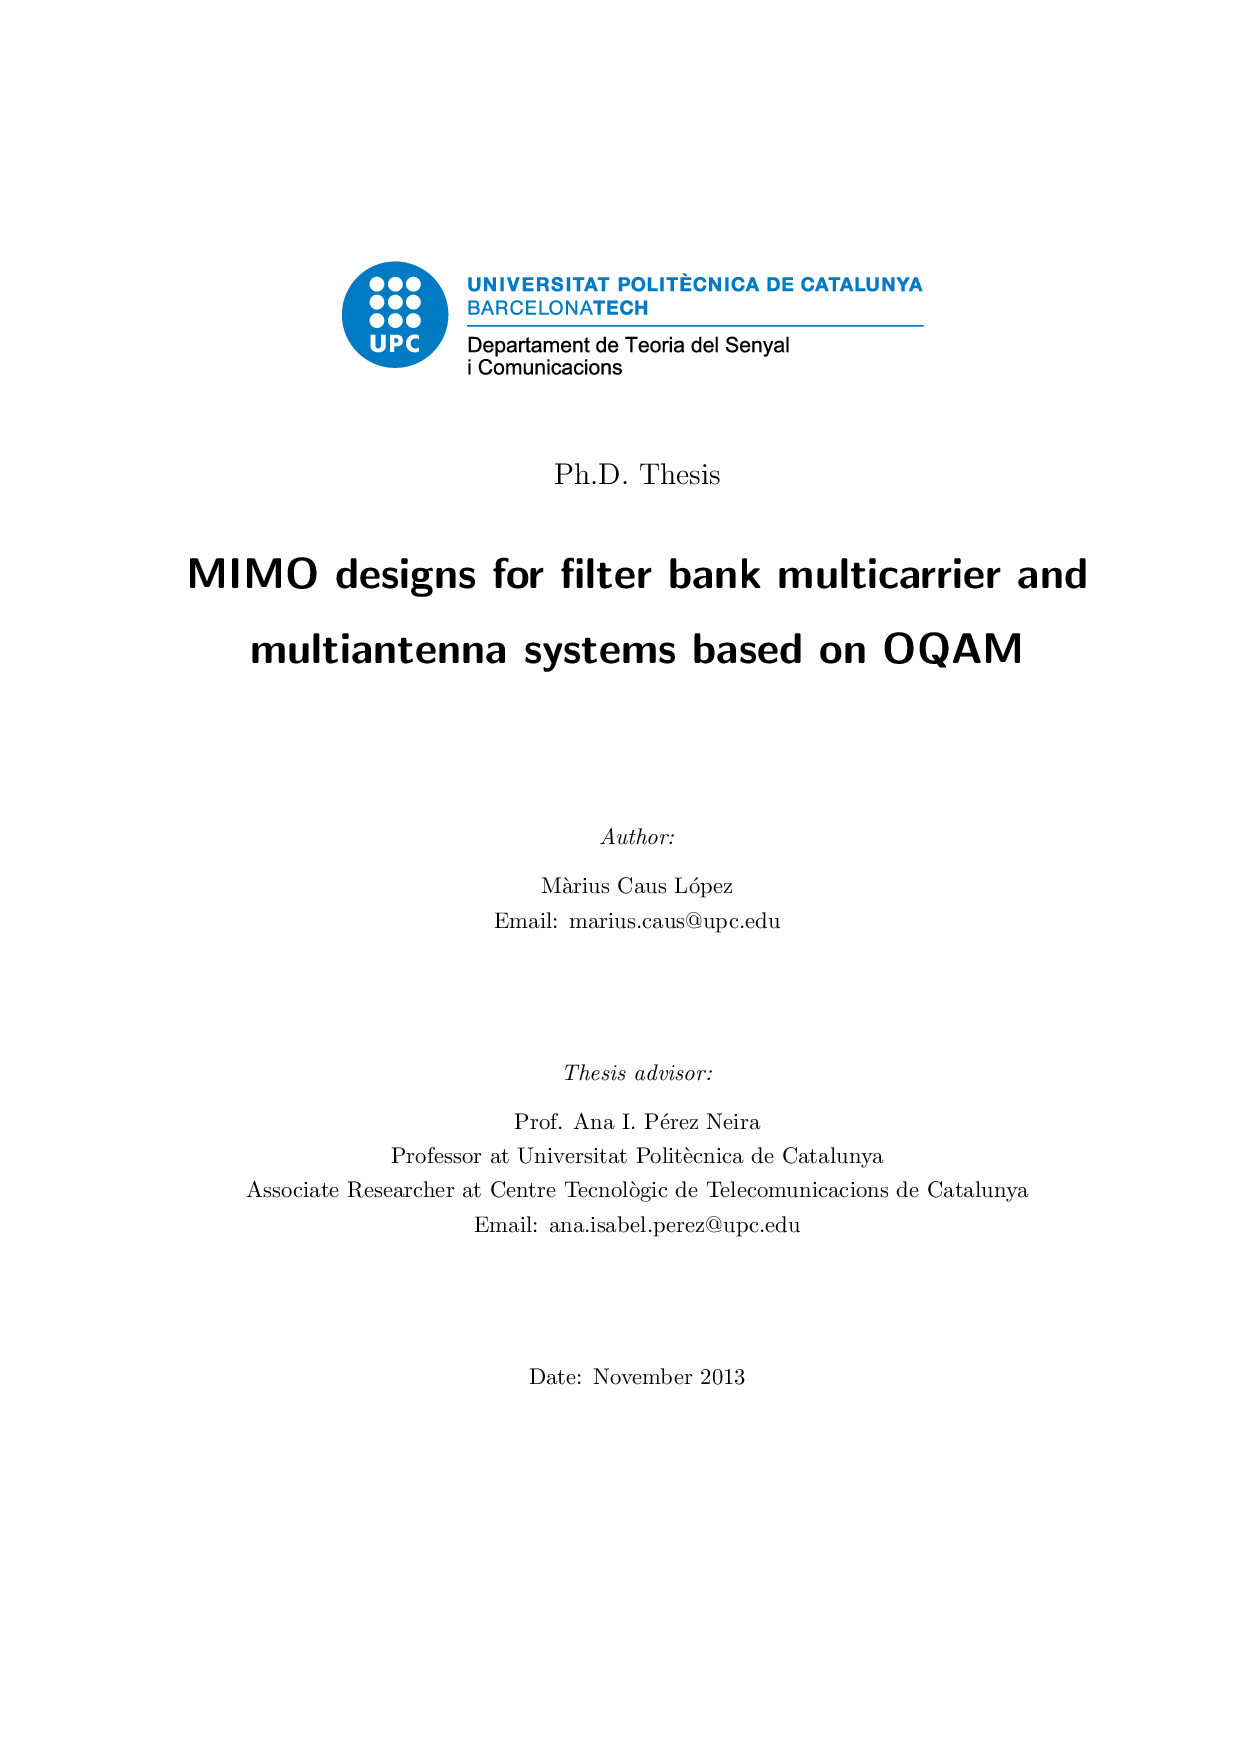 mimo designs for filter bank multicarrier and multiantenna systems  thumbnail of page 1 of mimo designs for filter bank multicarrier and multiantenna systems based on